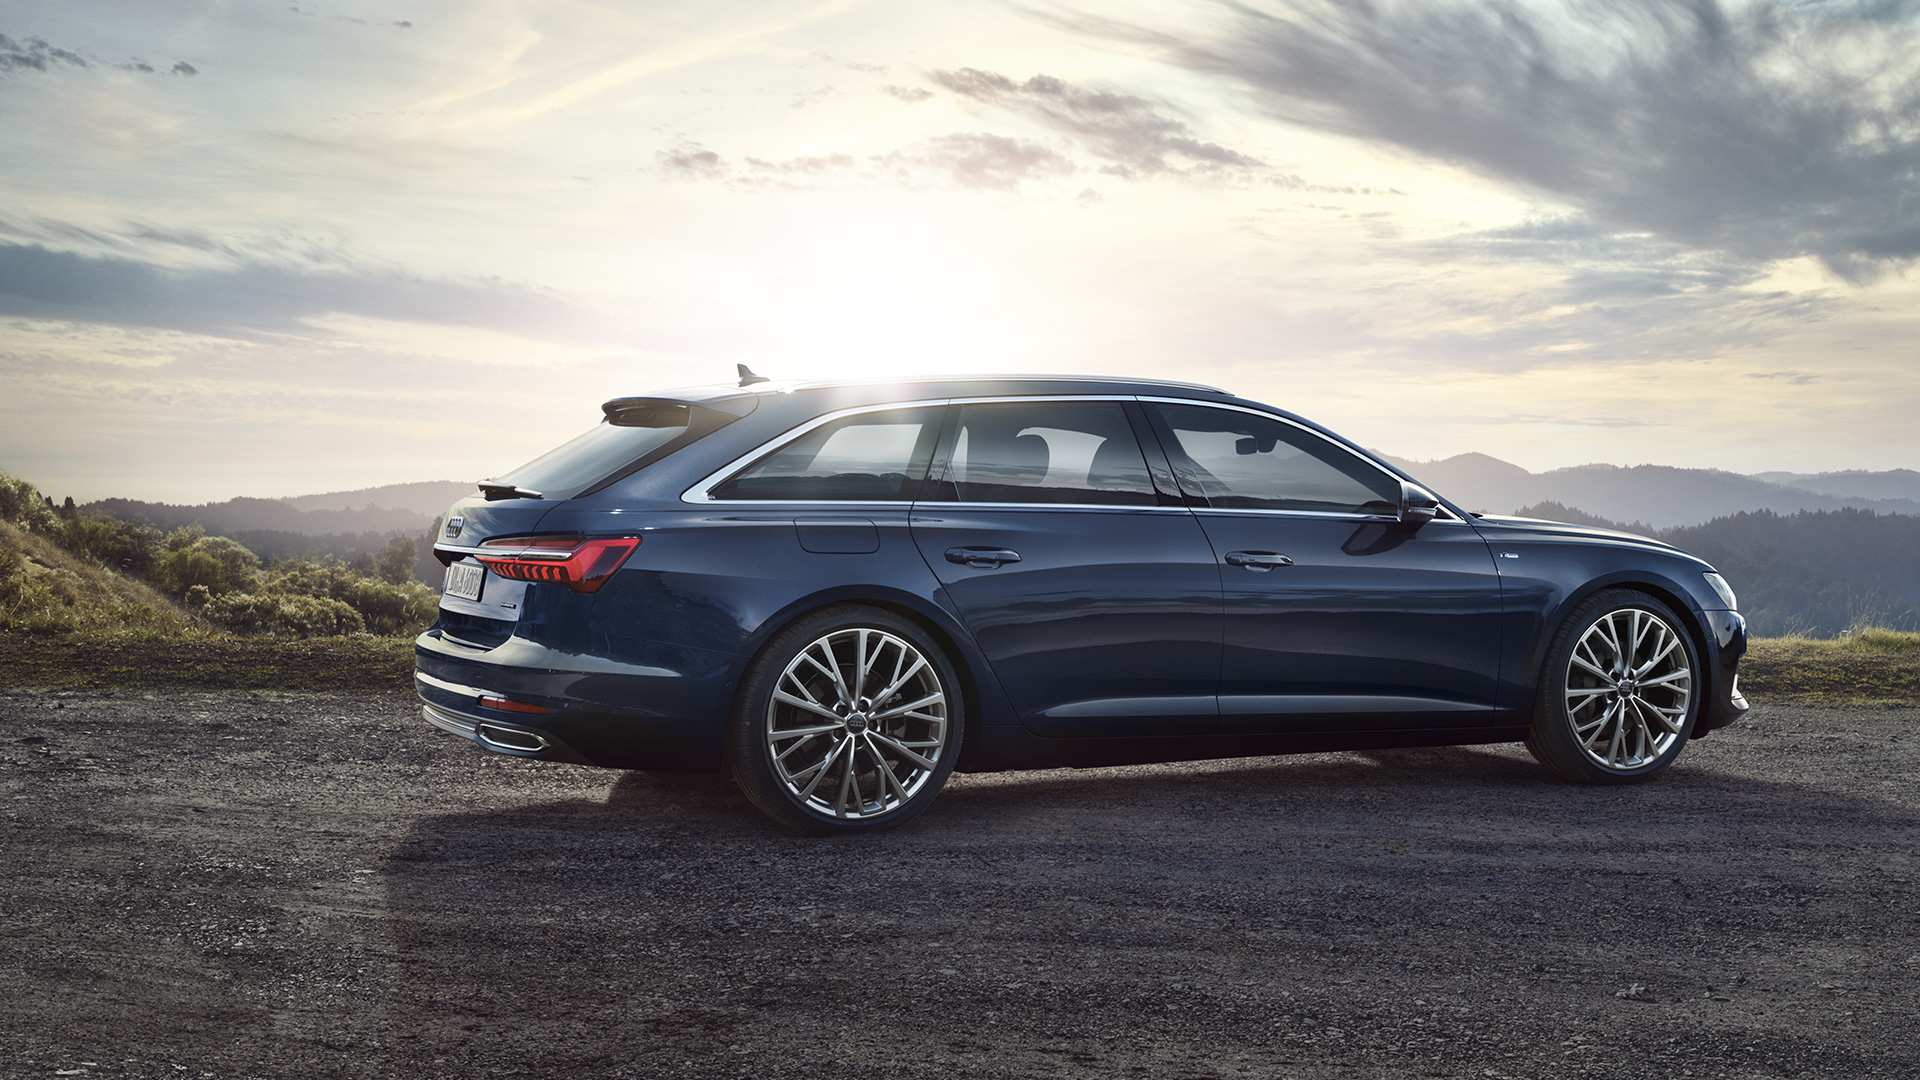 44 New Audi A6 2019 Images